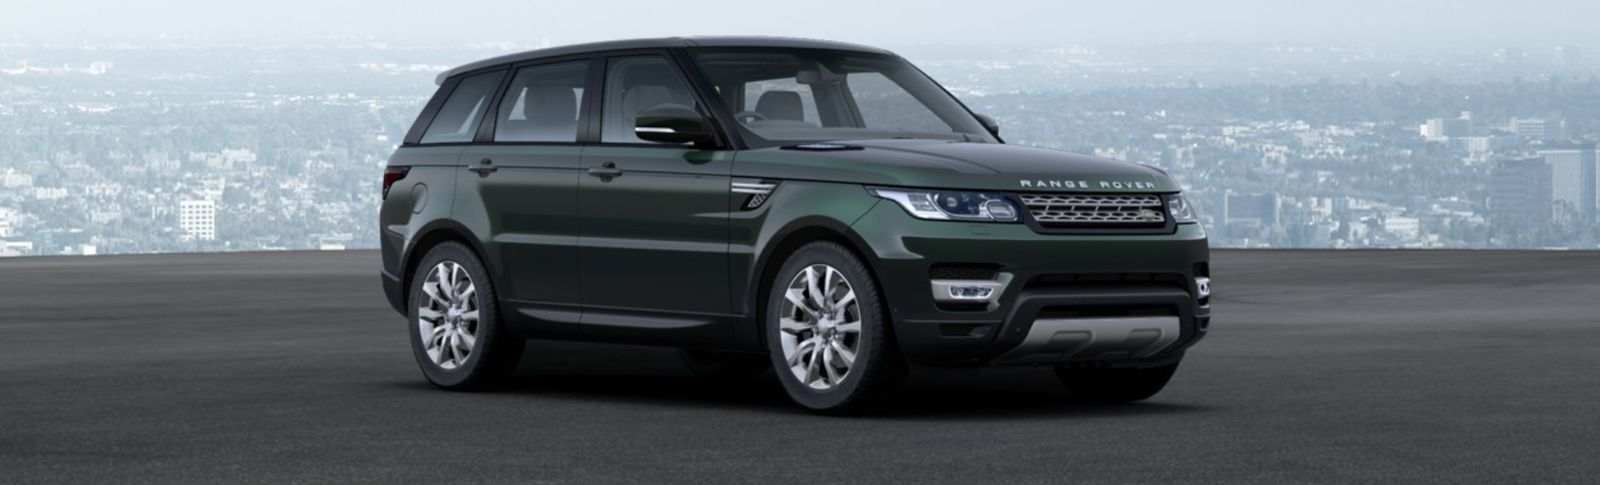 Range Rover Sport colours guide | carwow